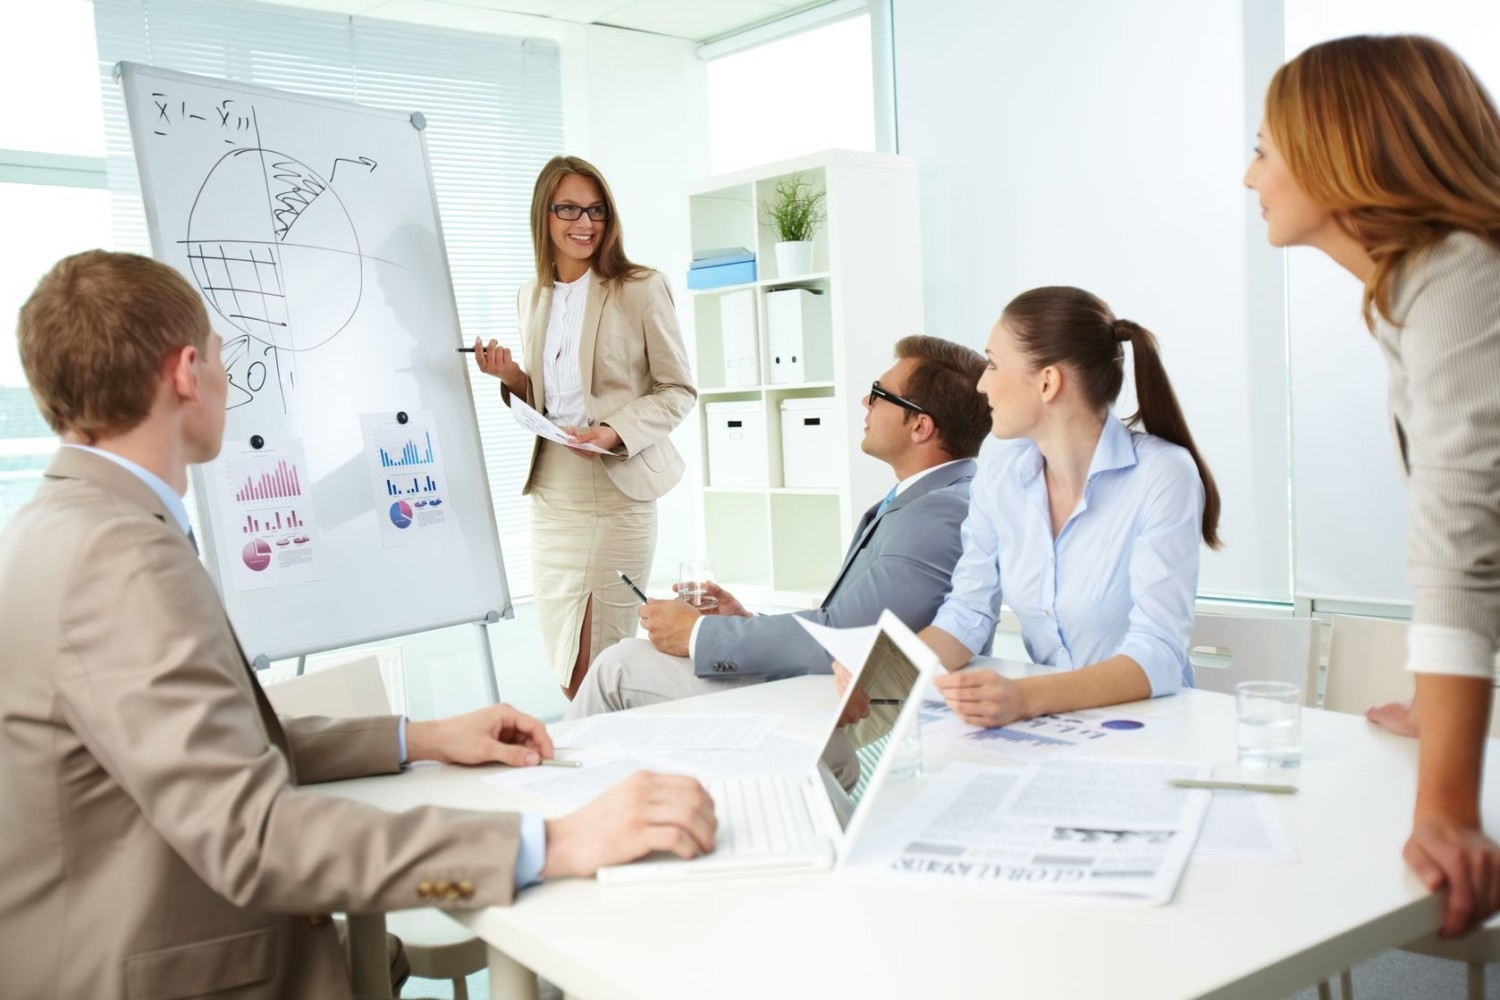 How Large Businesses Benefit from Using Mobile Whiteboards